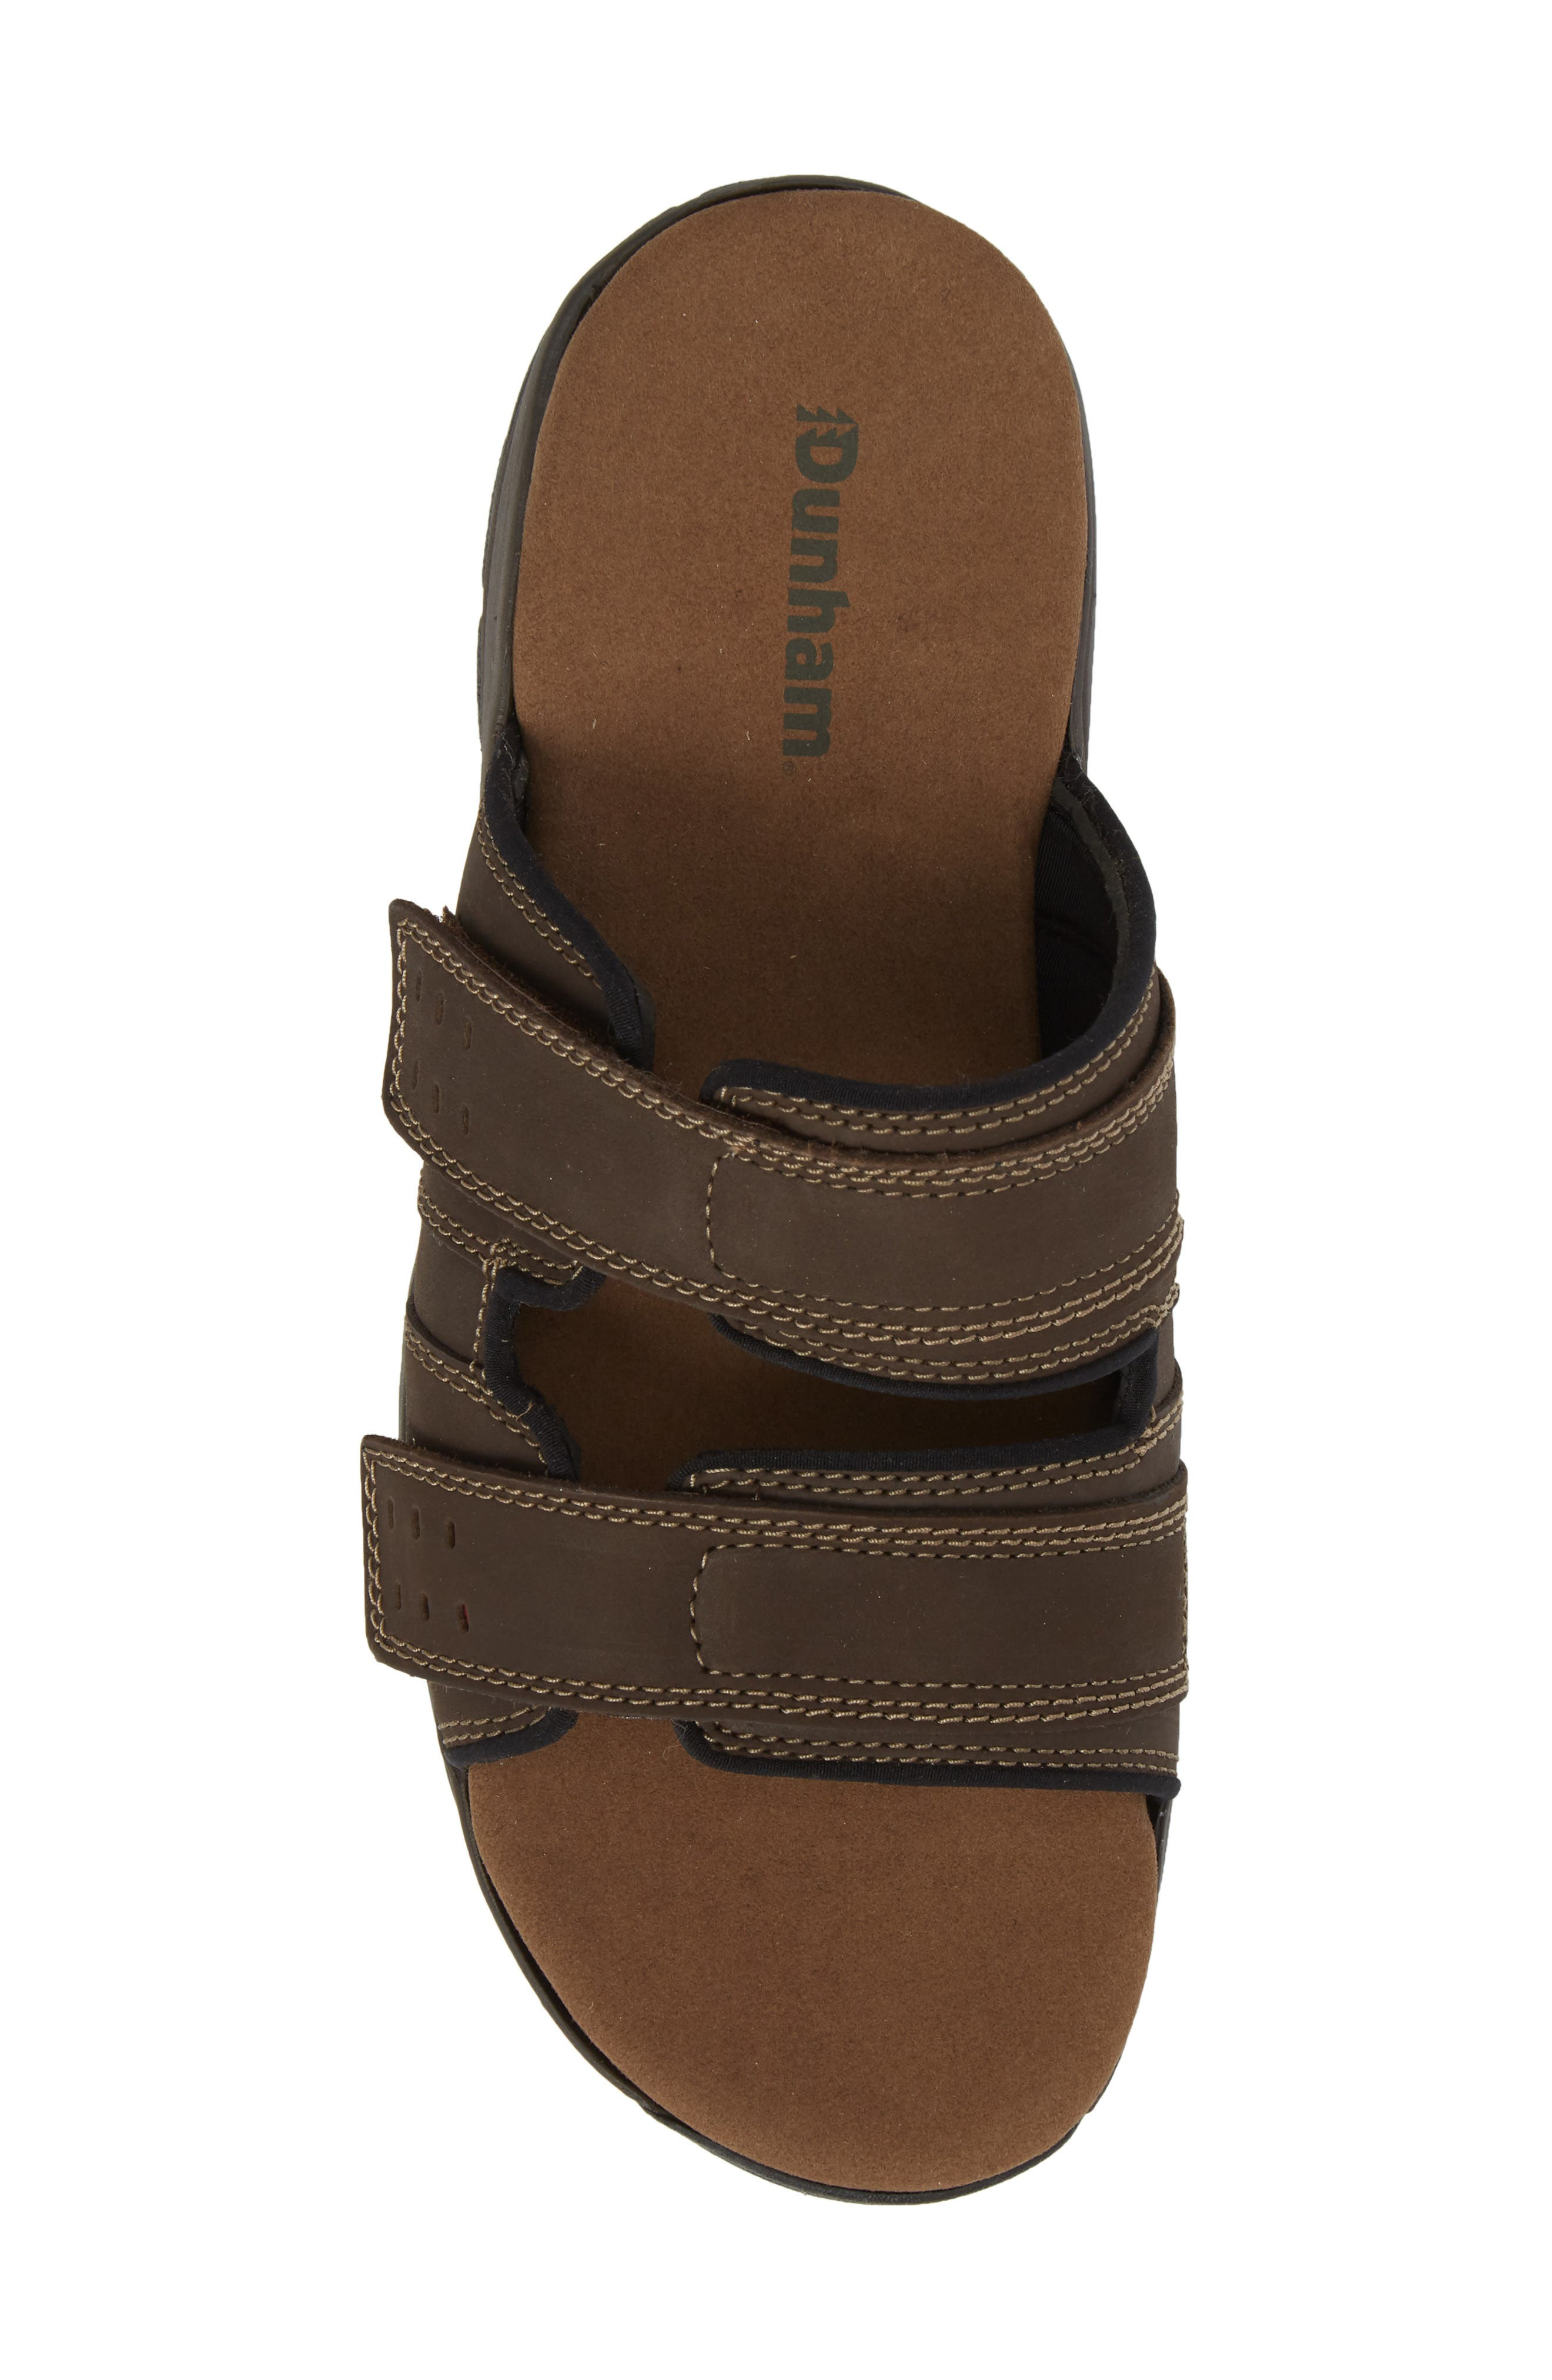 Newport Slide Sandal,                             Alternate thumbnail 5, color,                             Dark Brown Leather